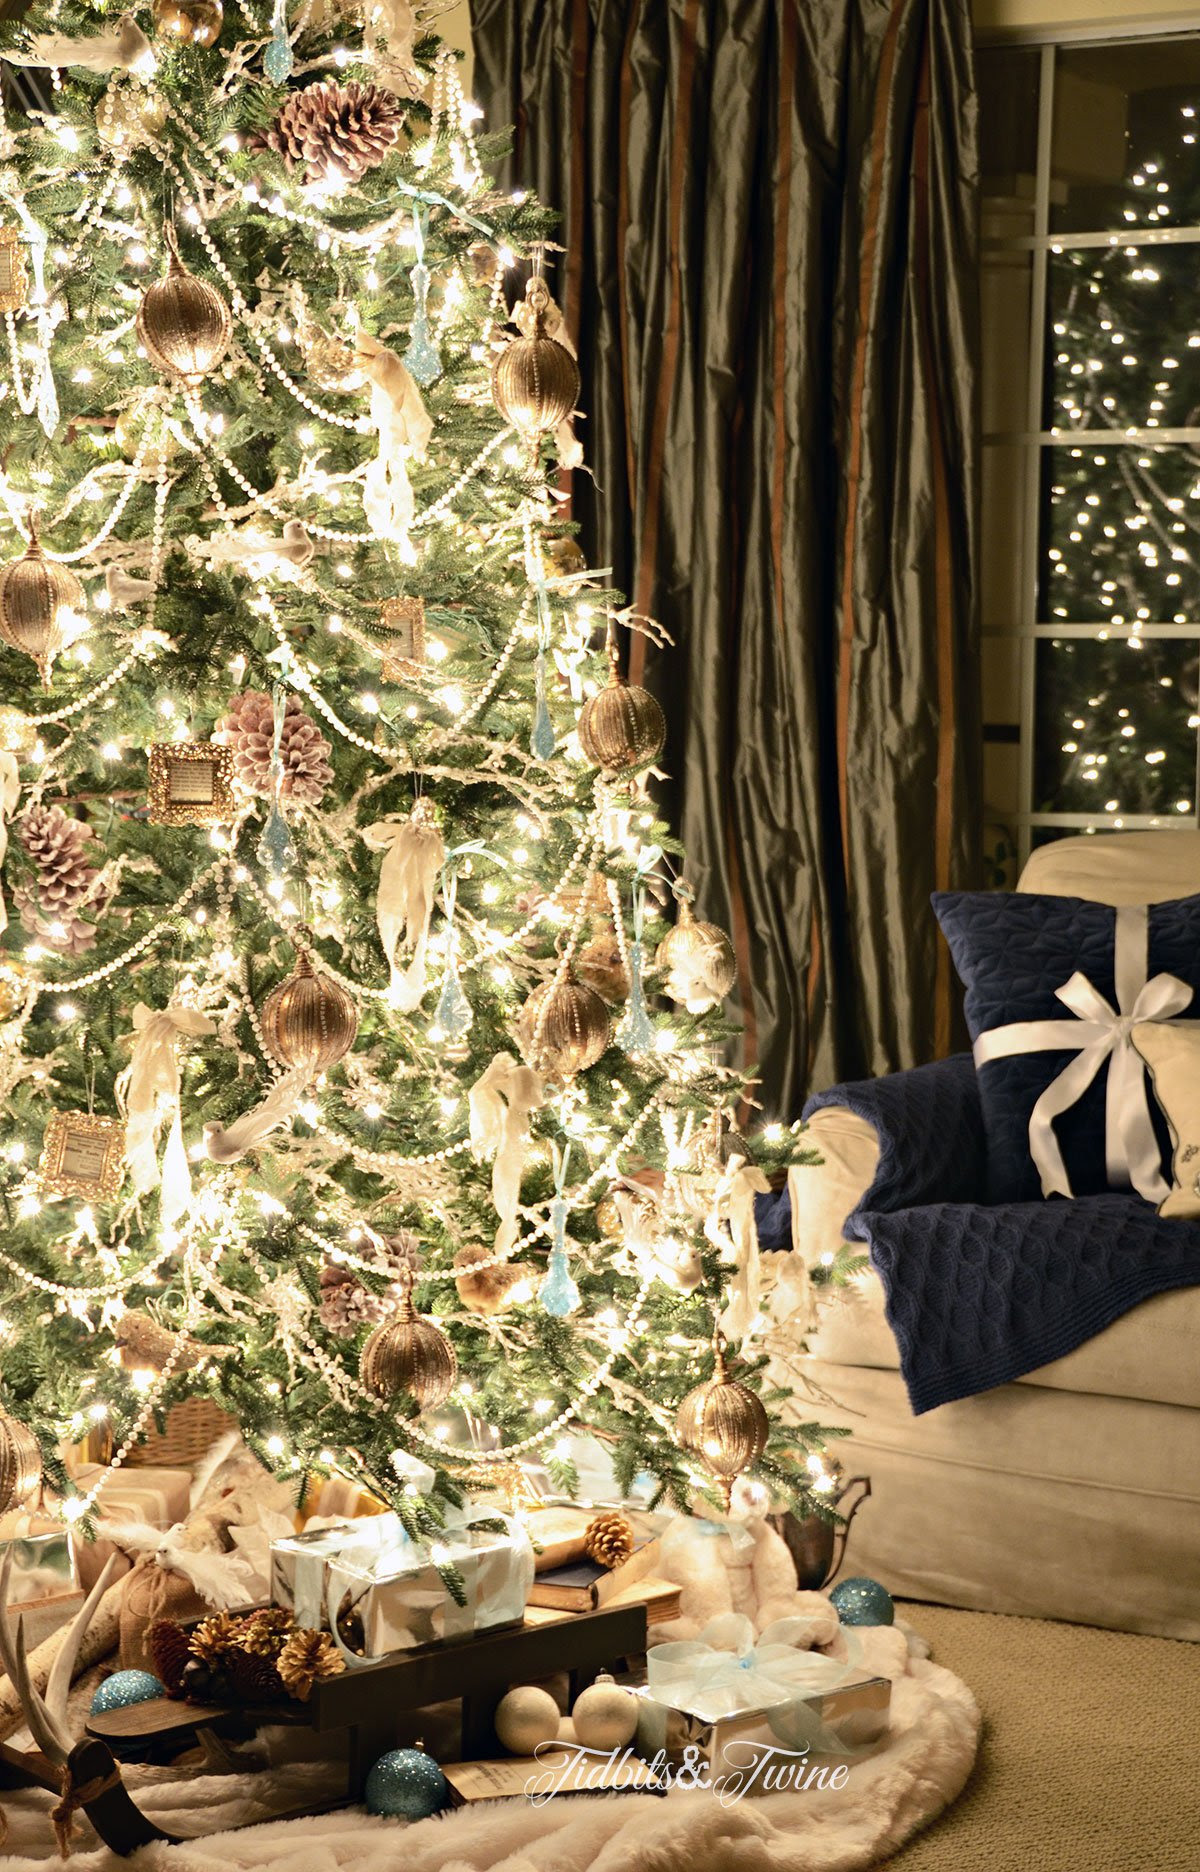 TIDBITS&TWINE French Vintage Christmas Tree at Night 2015